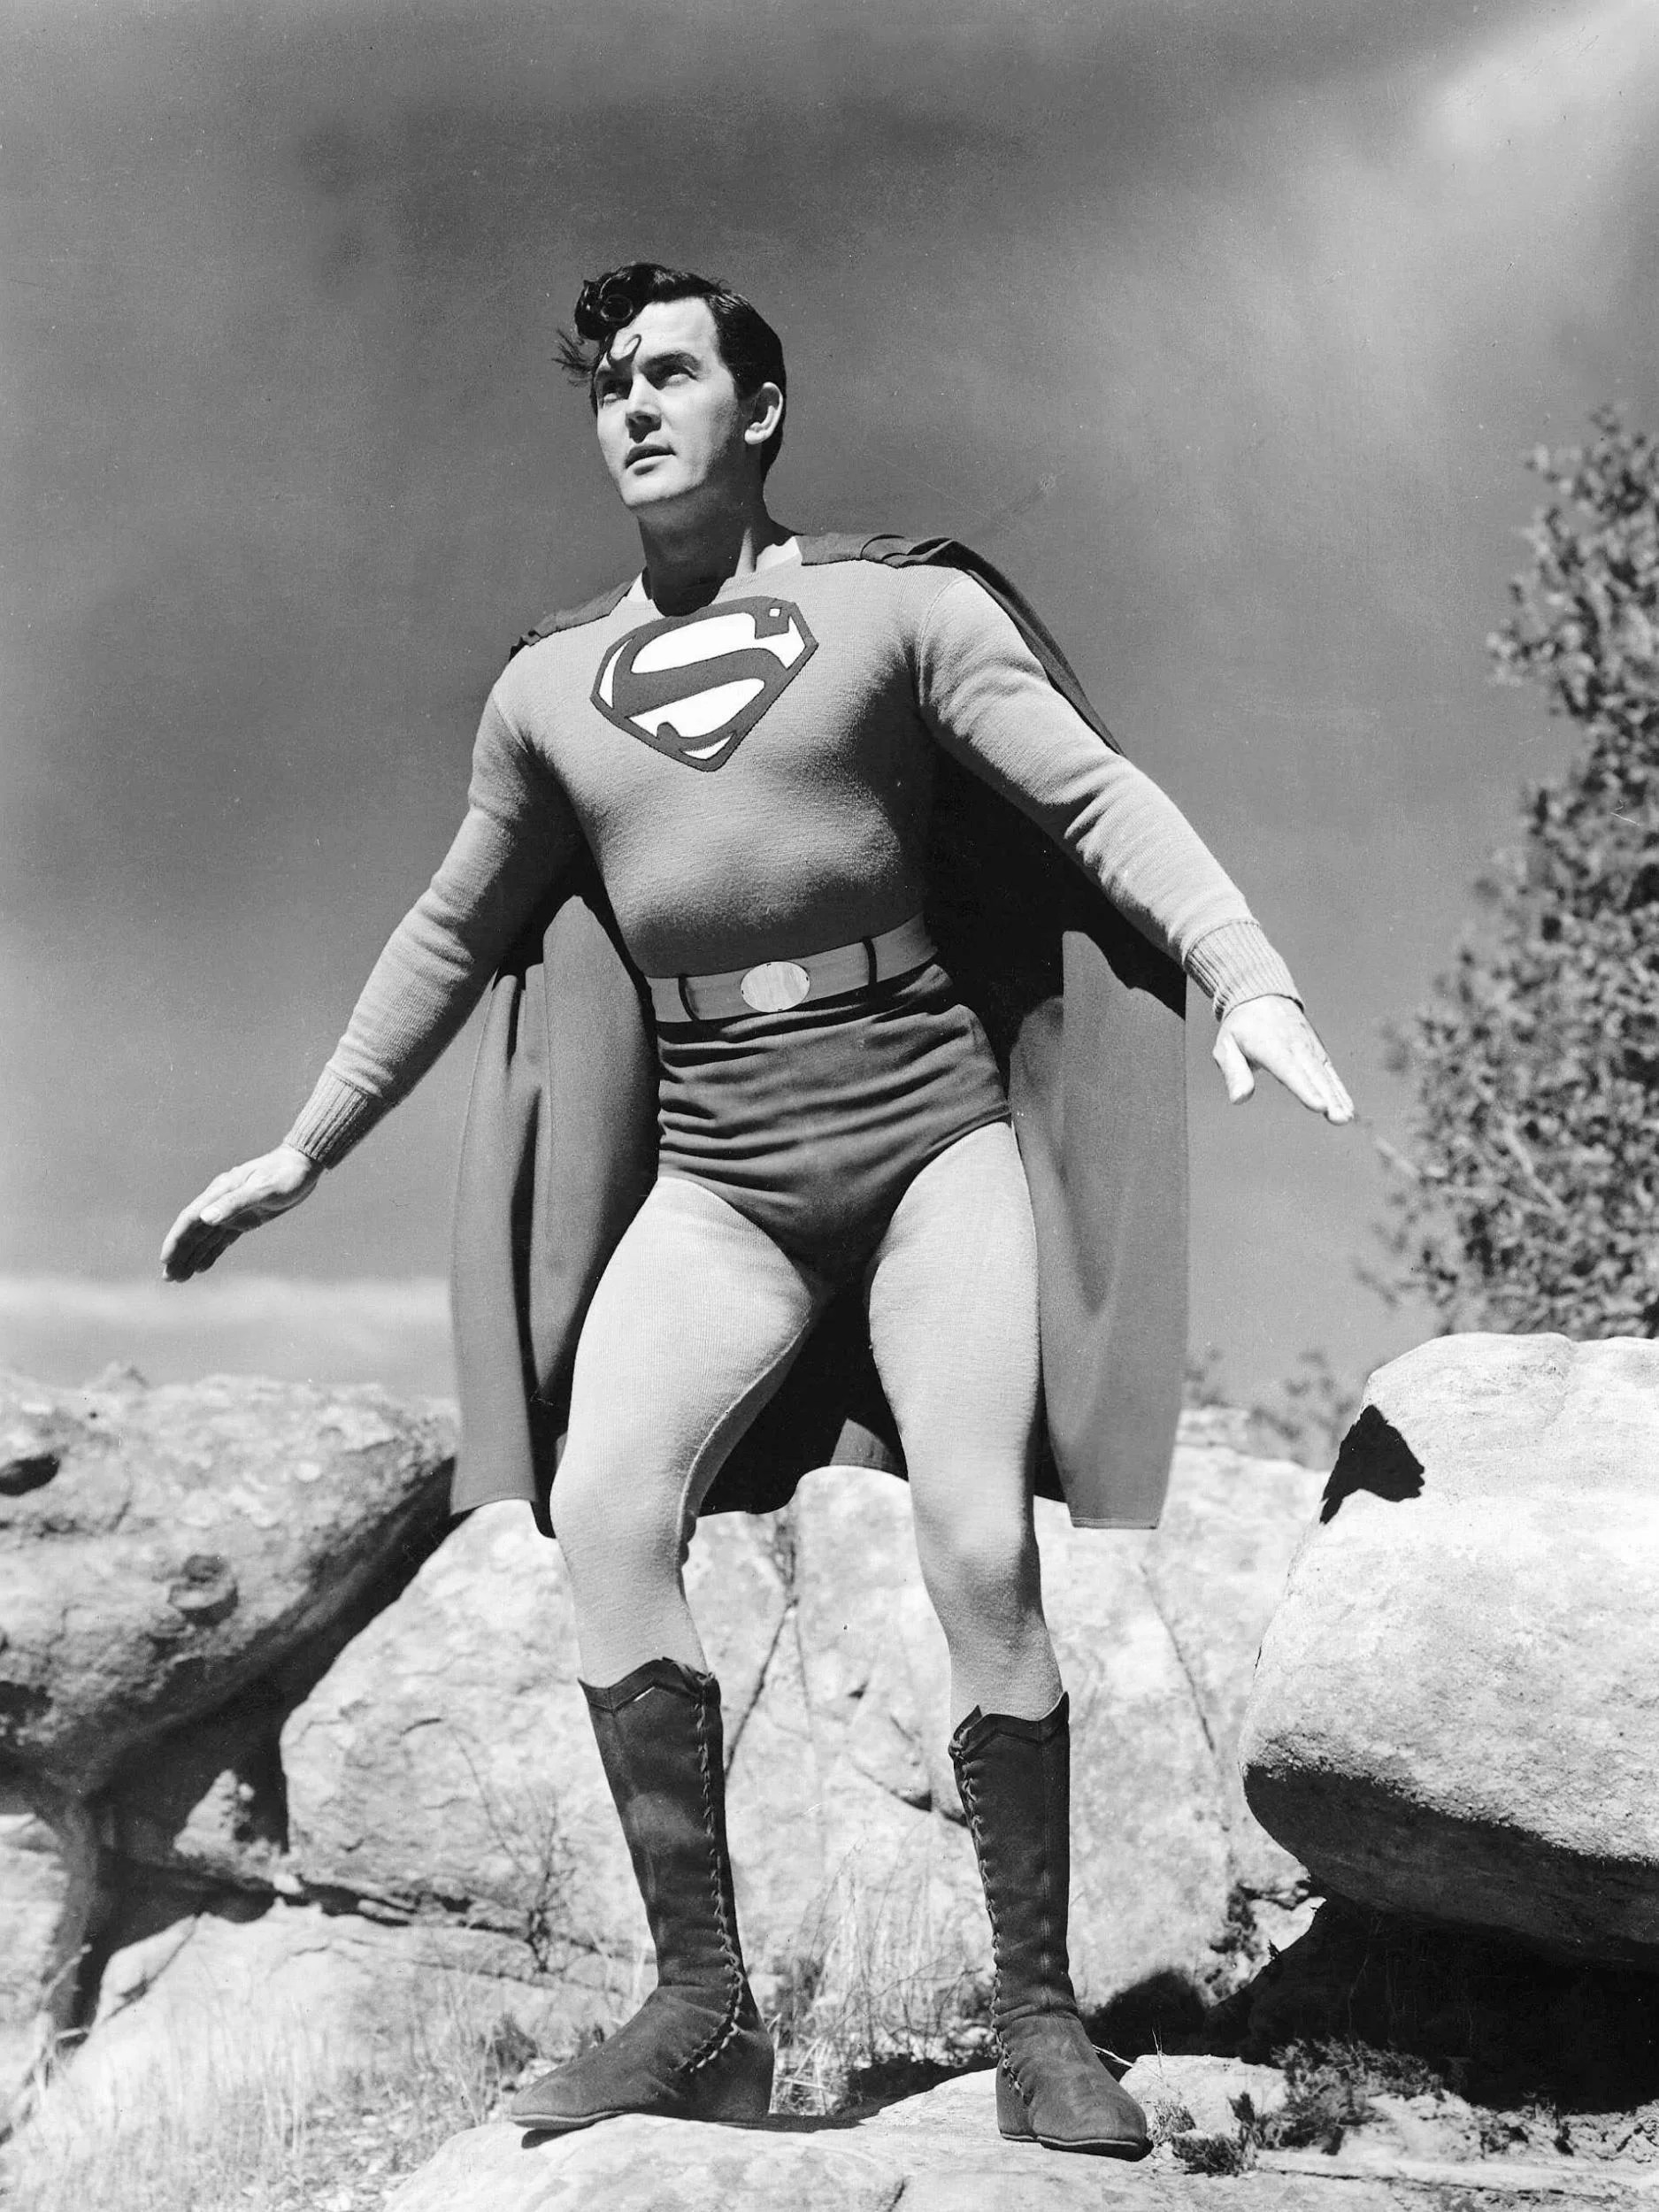 Superman at 80  The Jewish origins of the Man of Steel and the     6 show all